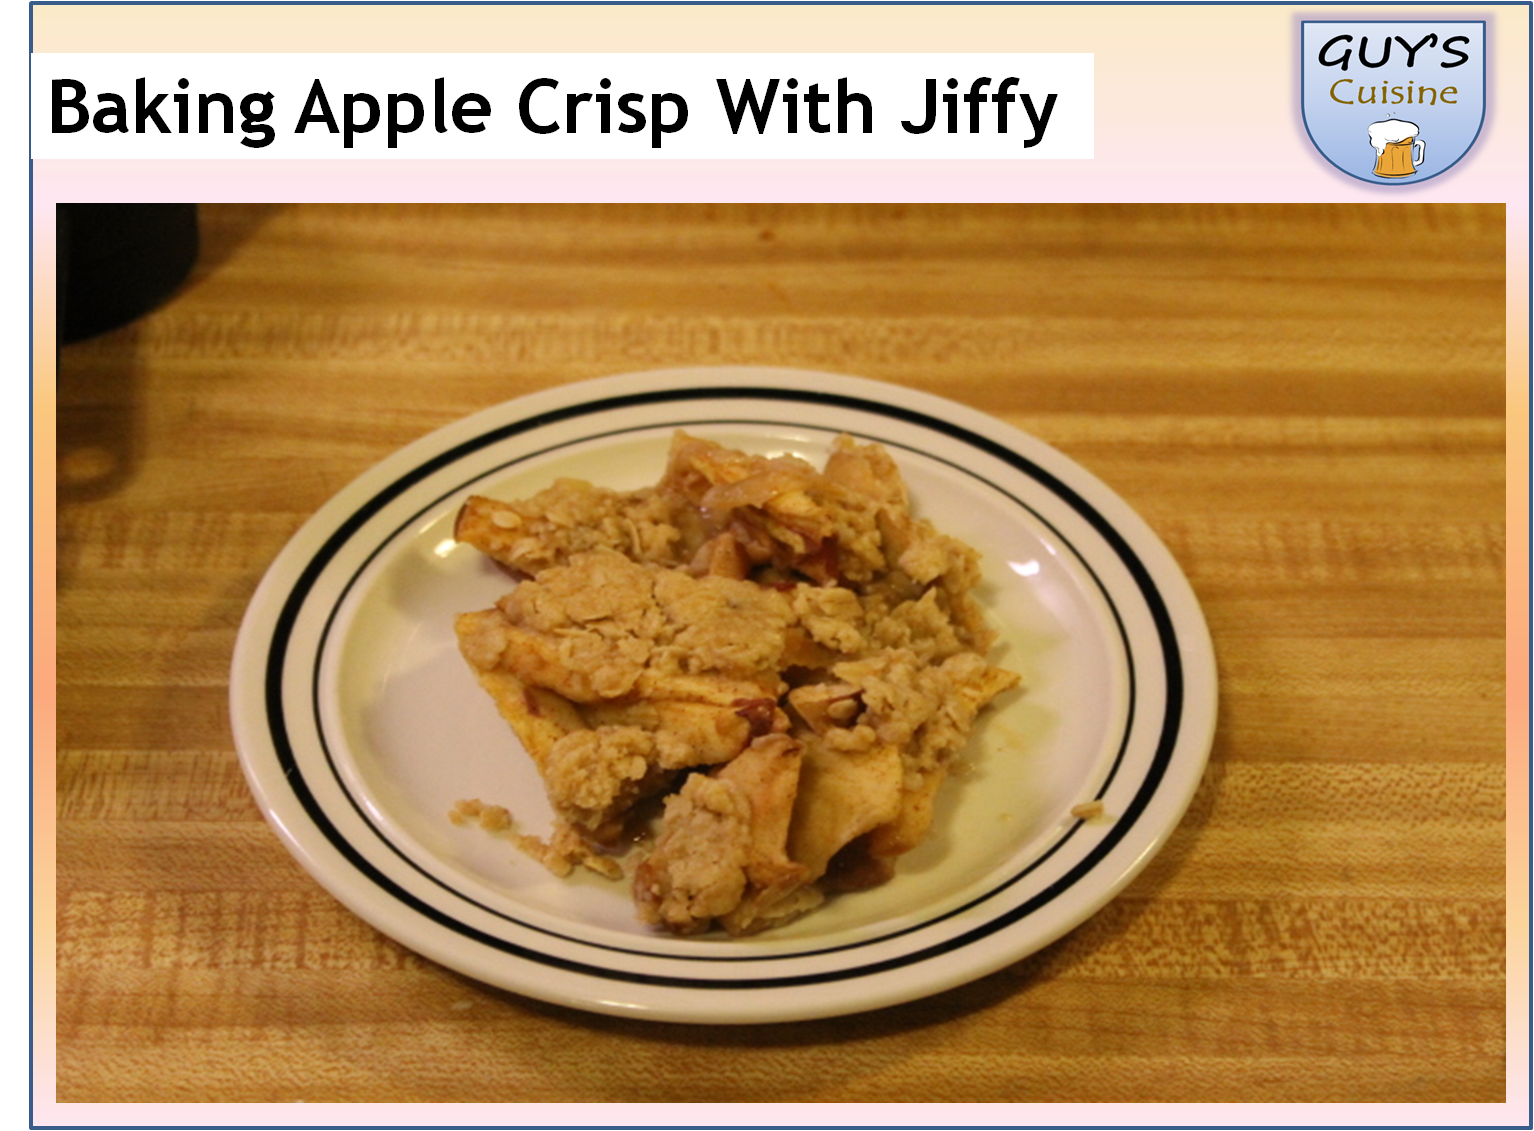 Apple Crisp Recipe With Jiffy Cake Mix